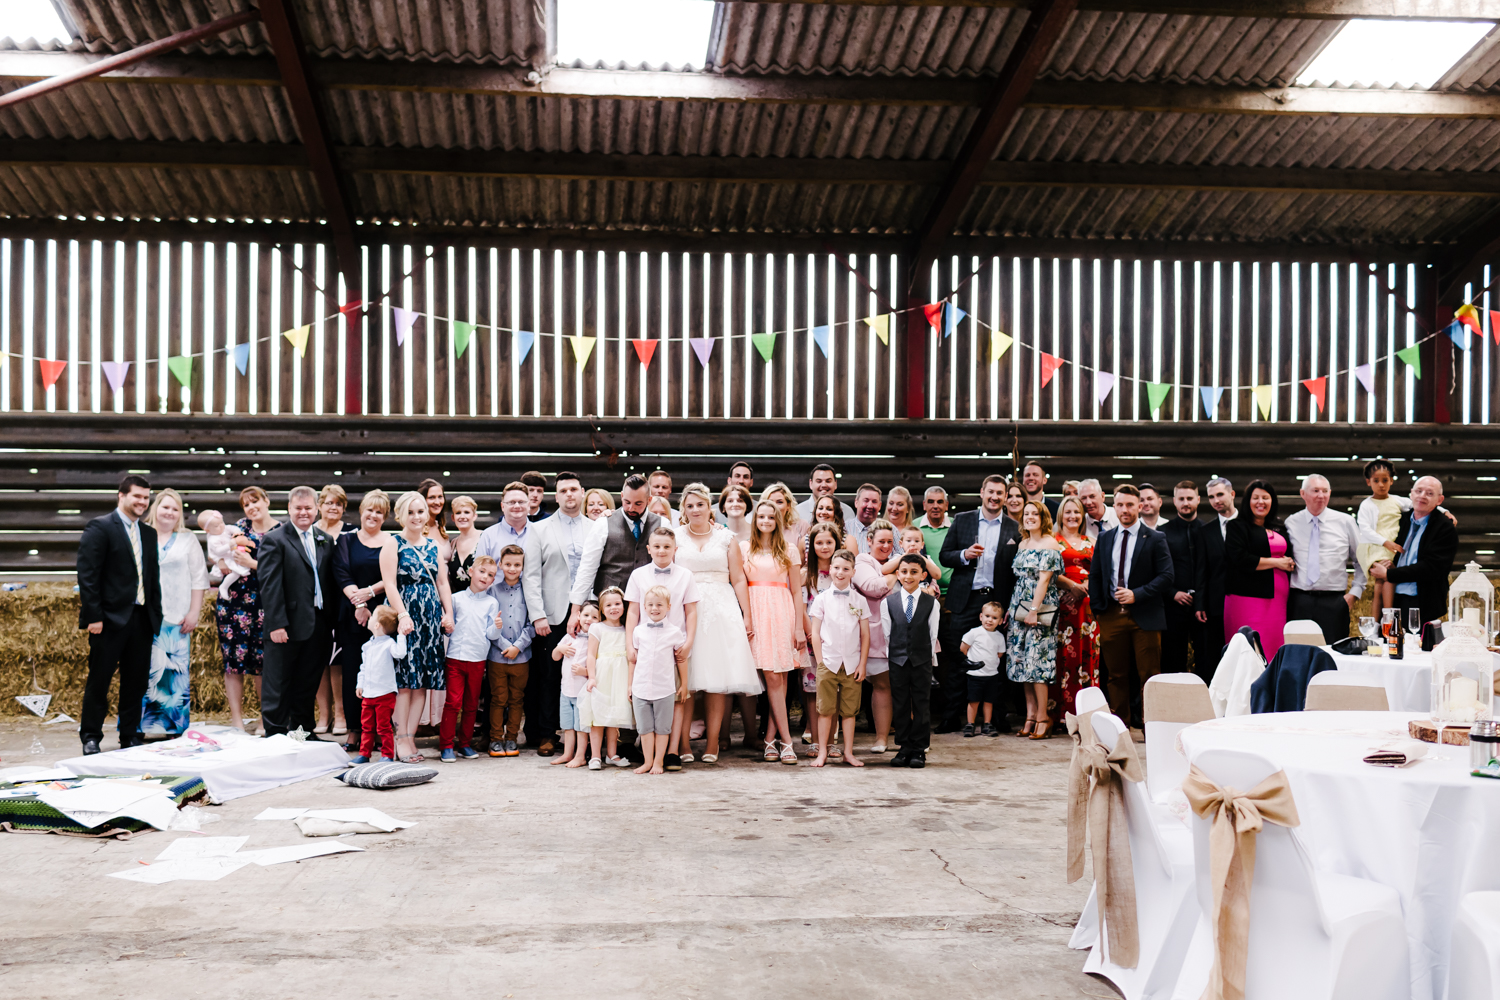 north-wales-wedding-photographer-417.jpg